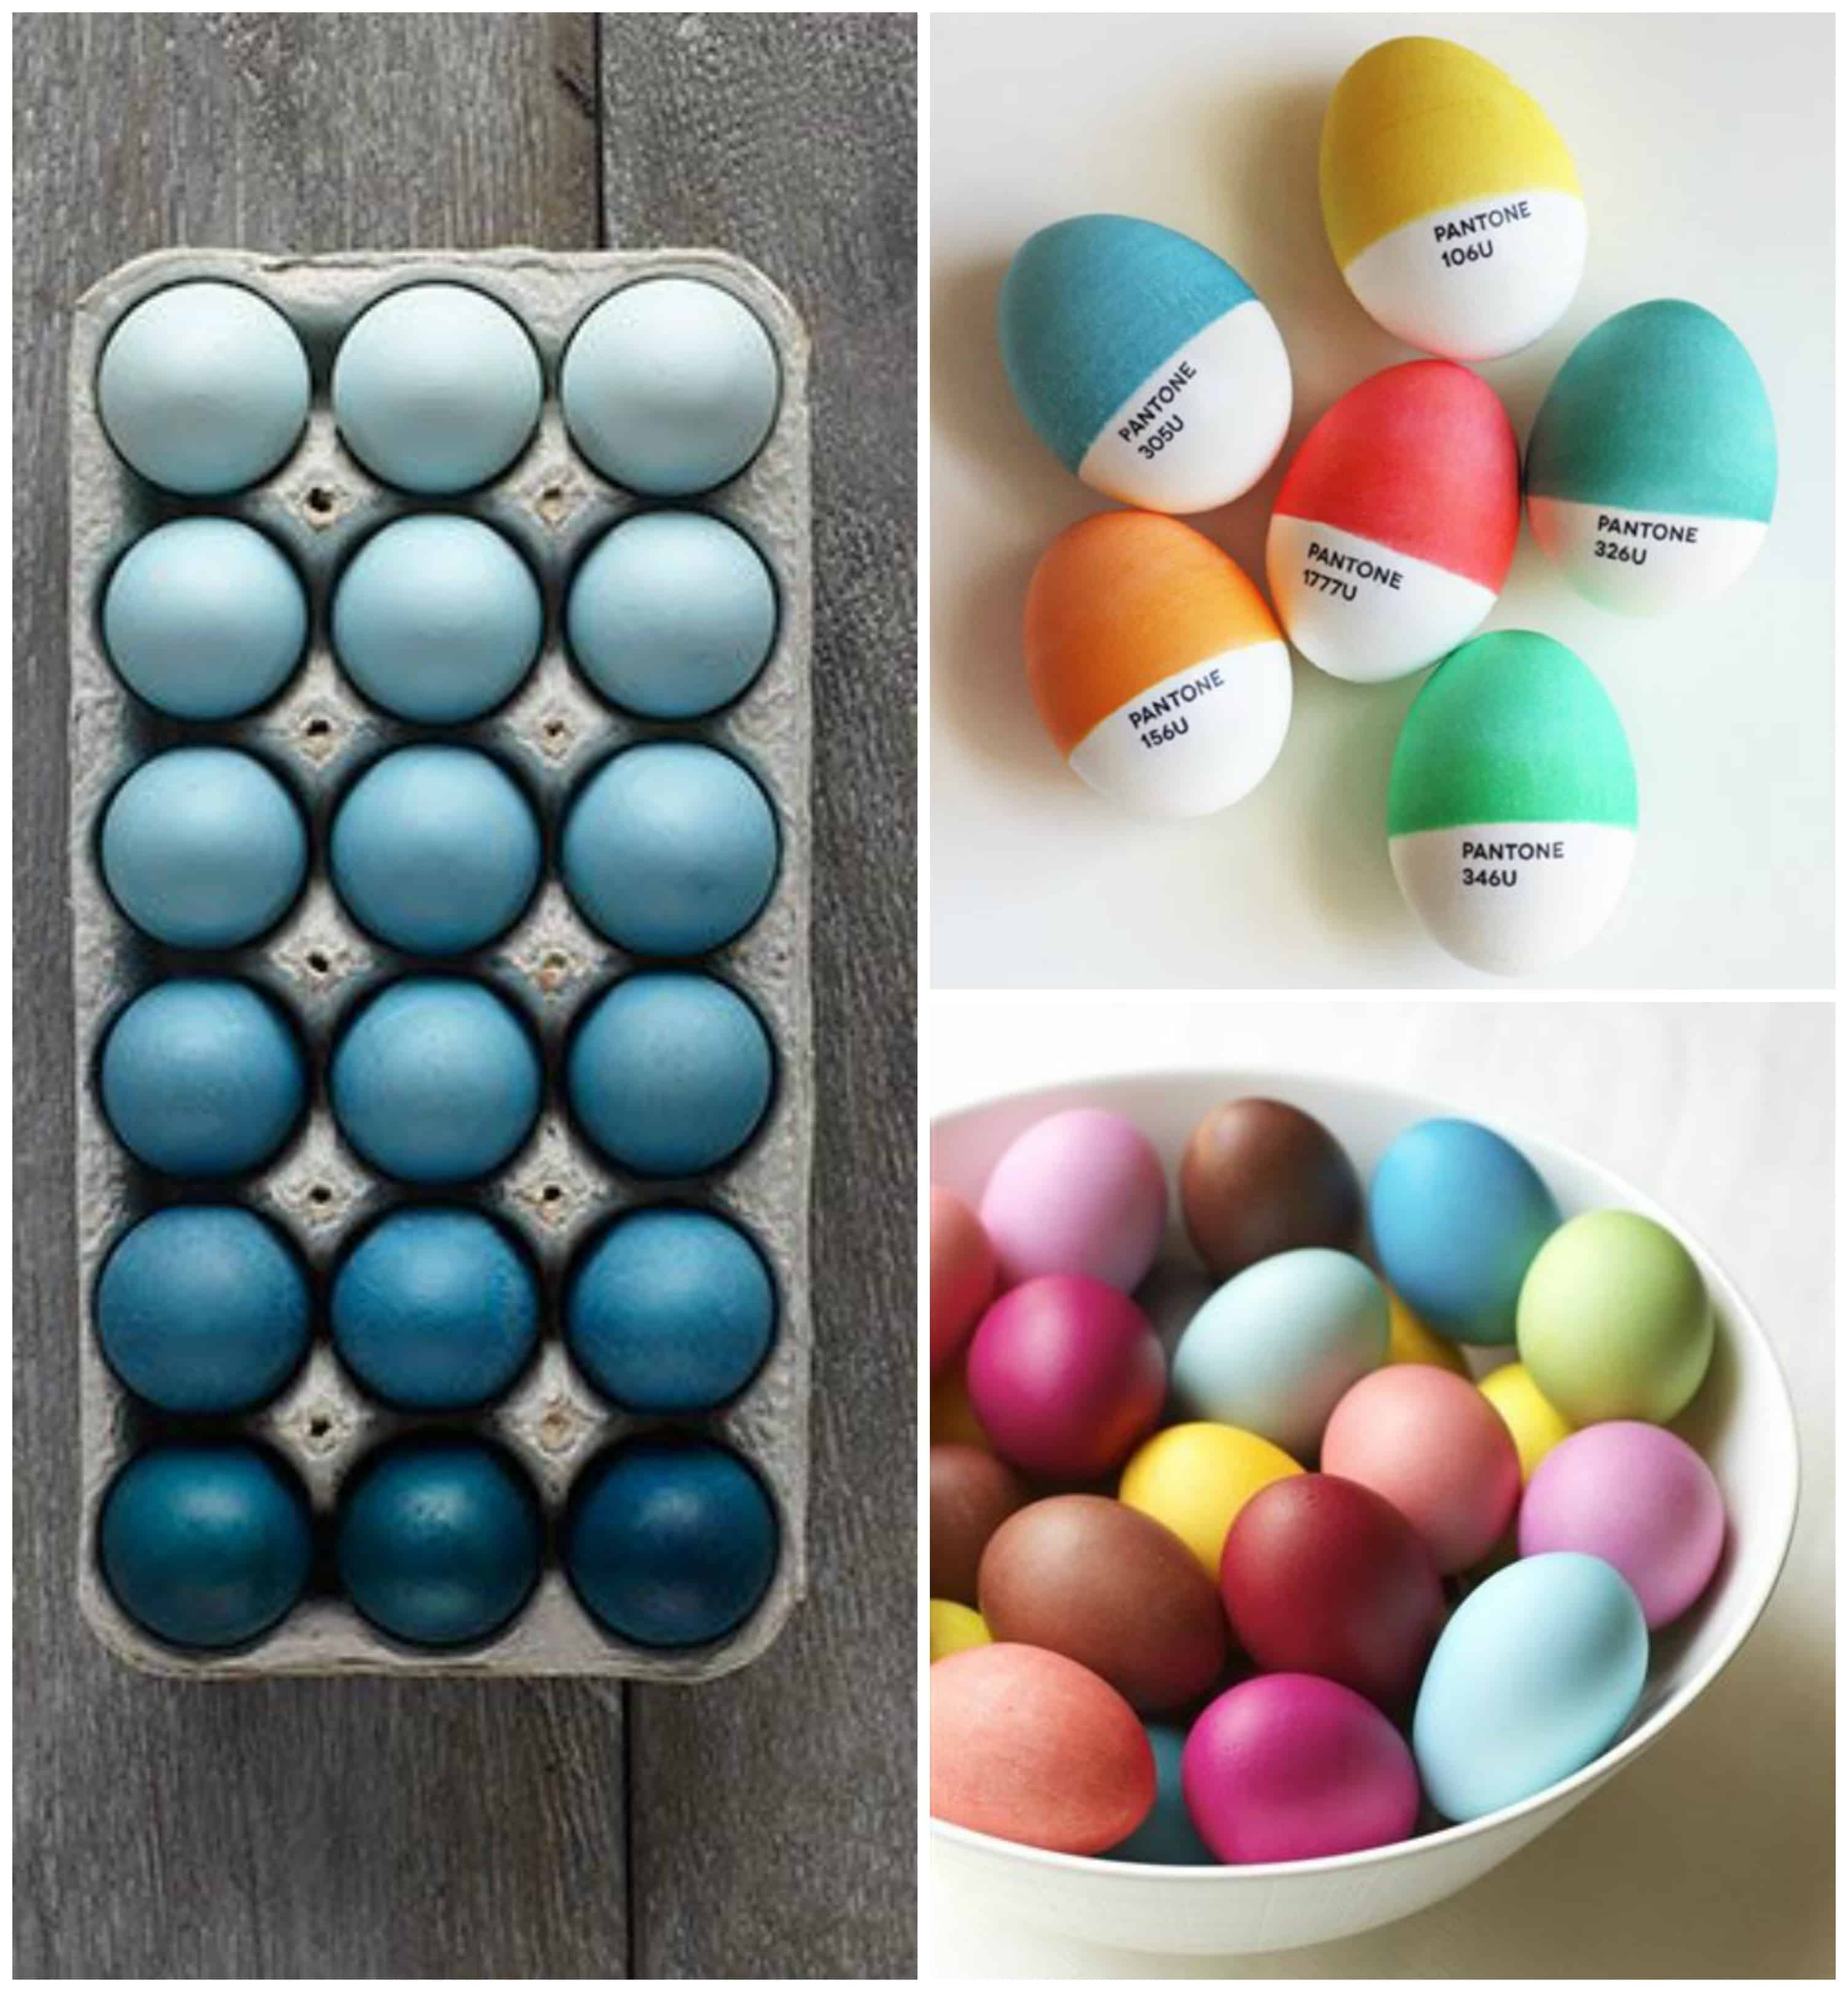 PANTONE DIY 10 MODI PER DECORARE LE UOVA DI PASQUA TUTTOFERRAMENTA.IT